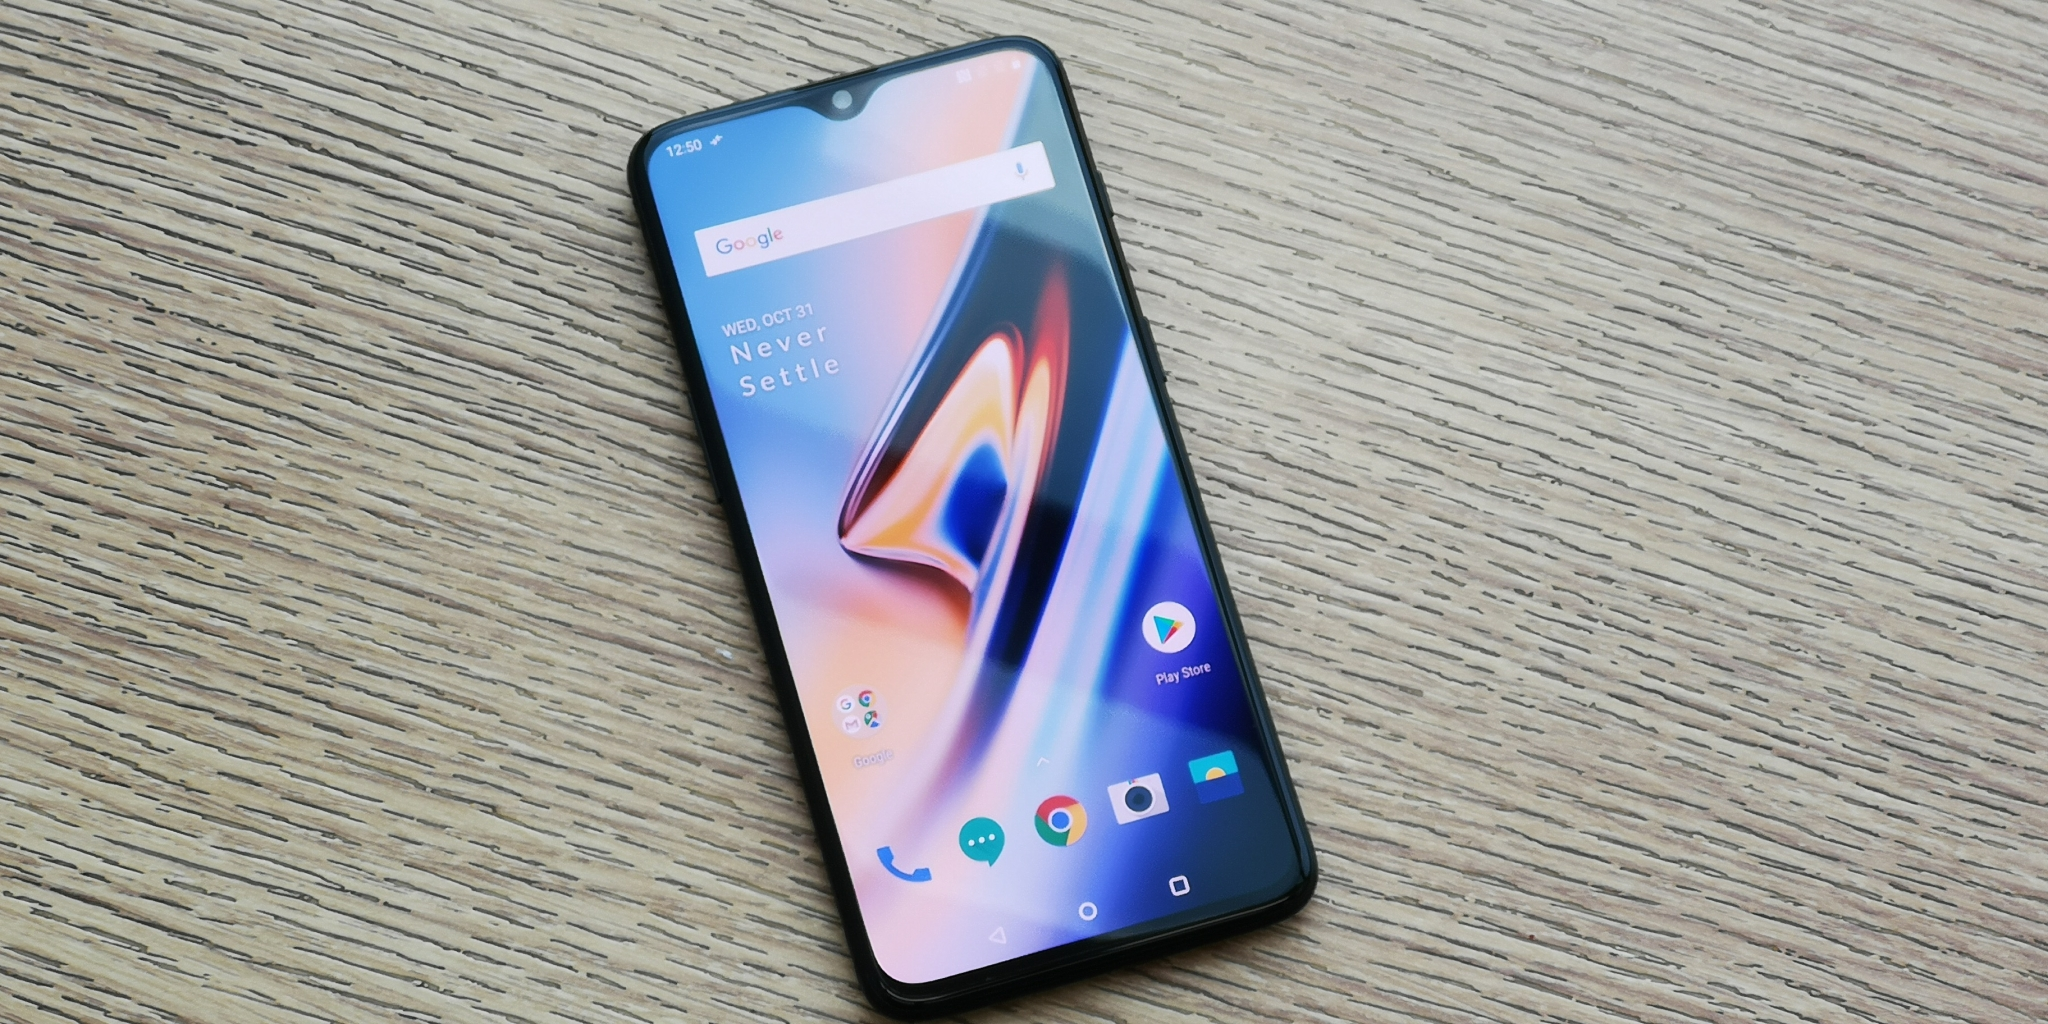 OnePlus 6T Selling for Rs 34,999 As OnePlus 7 Launch Date Nears